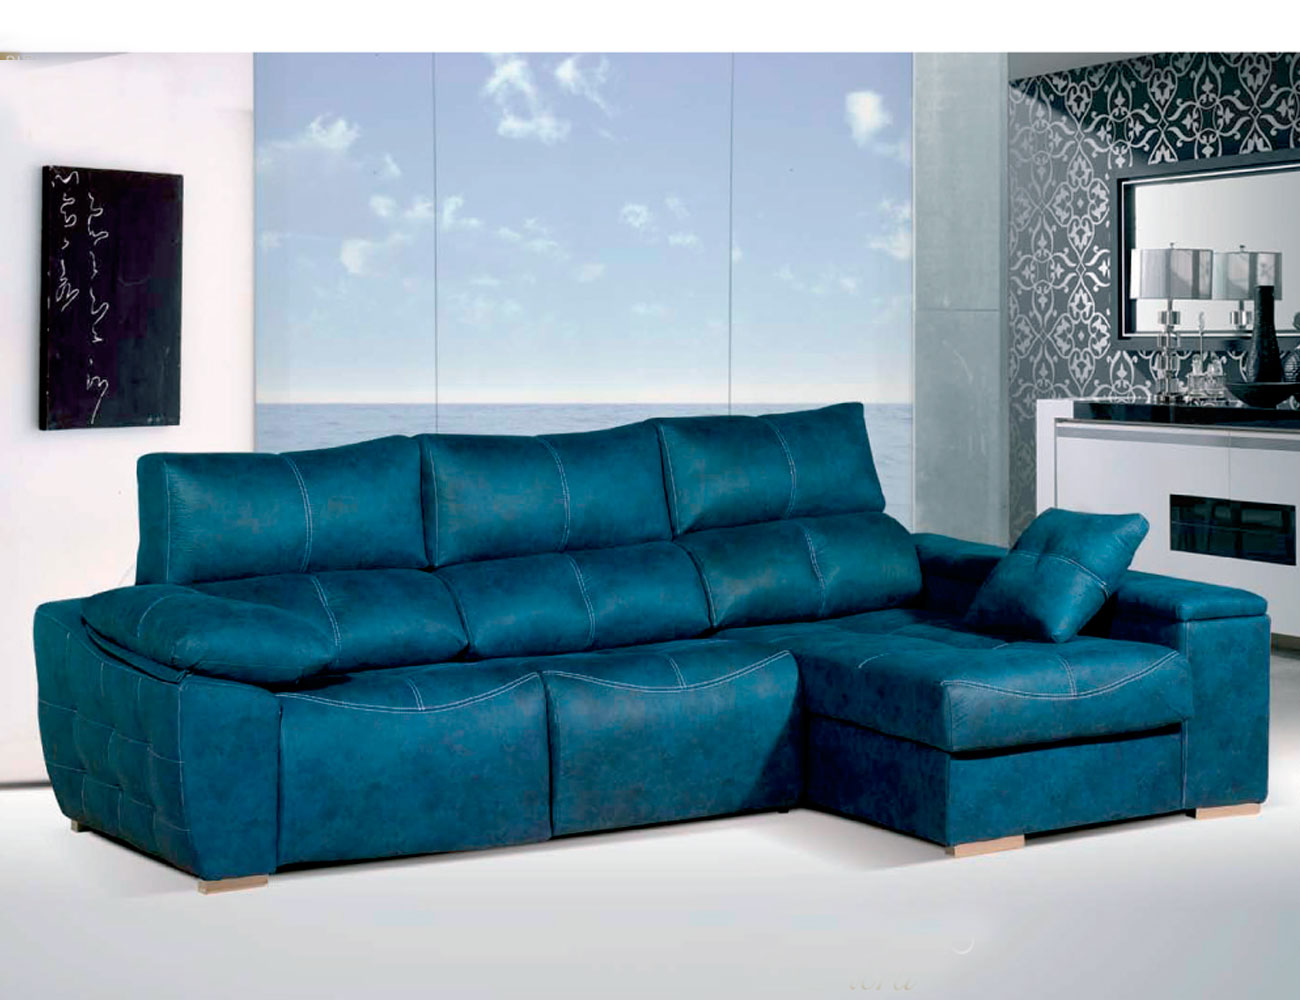 Sofa chaiselongue relax 2 motores anti manchas turquesa45